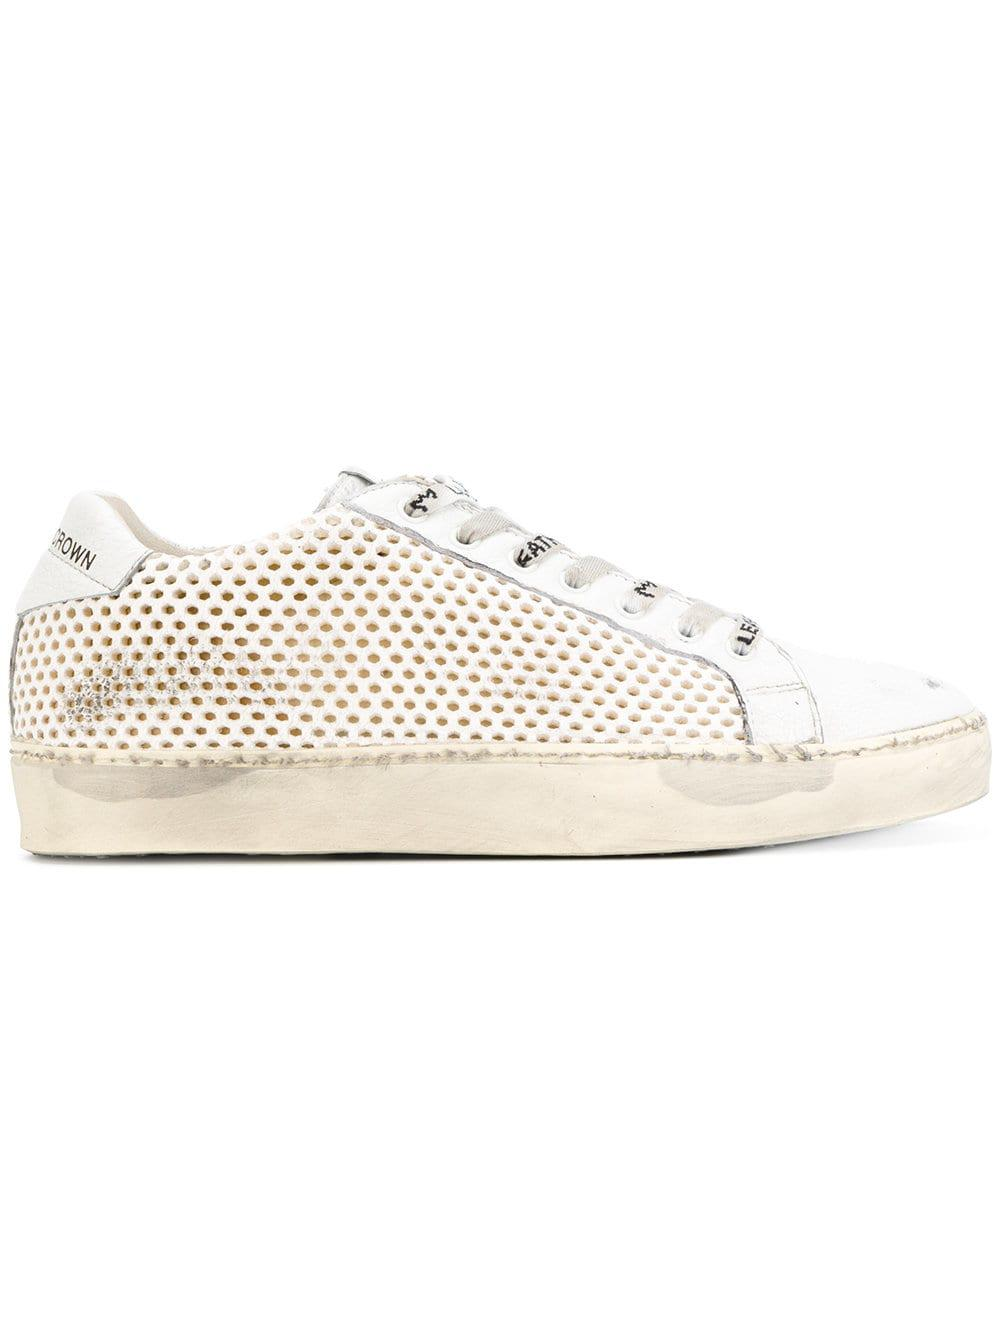 Leather Crown Leather M Iconic 2 Trainers in White